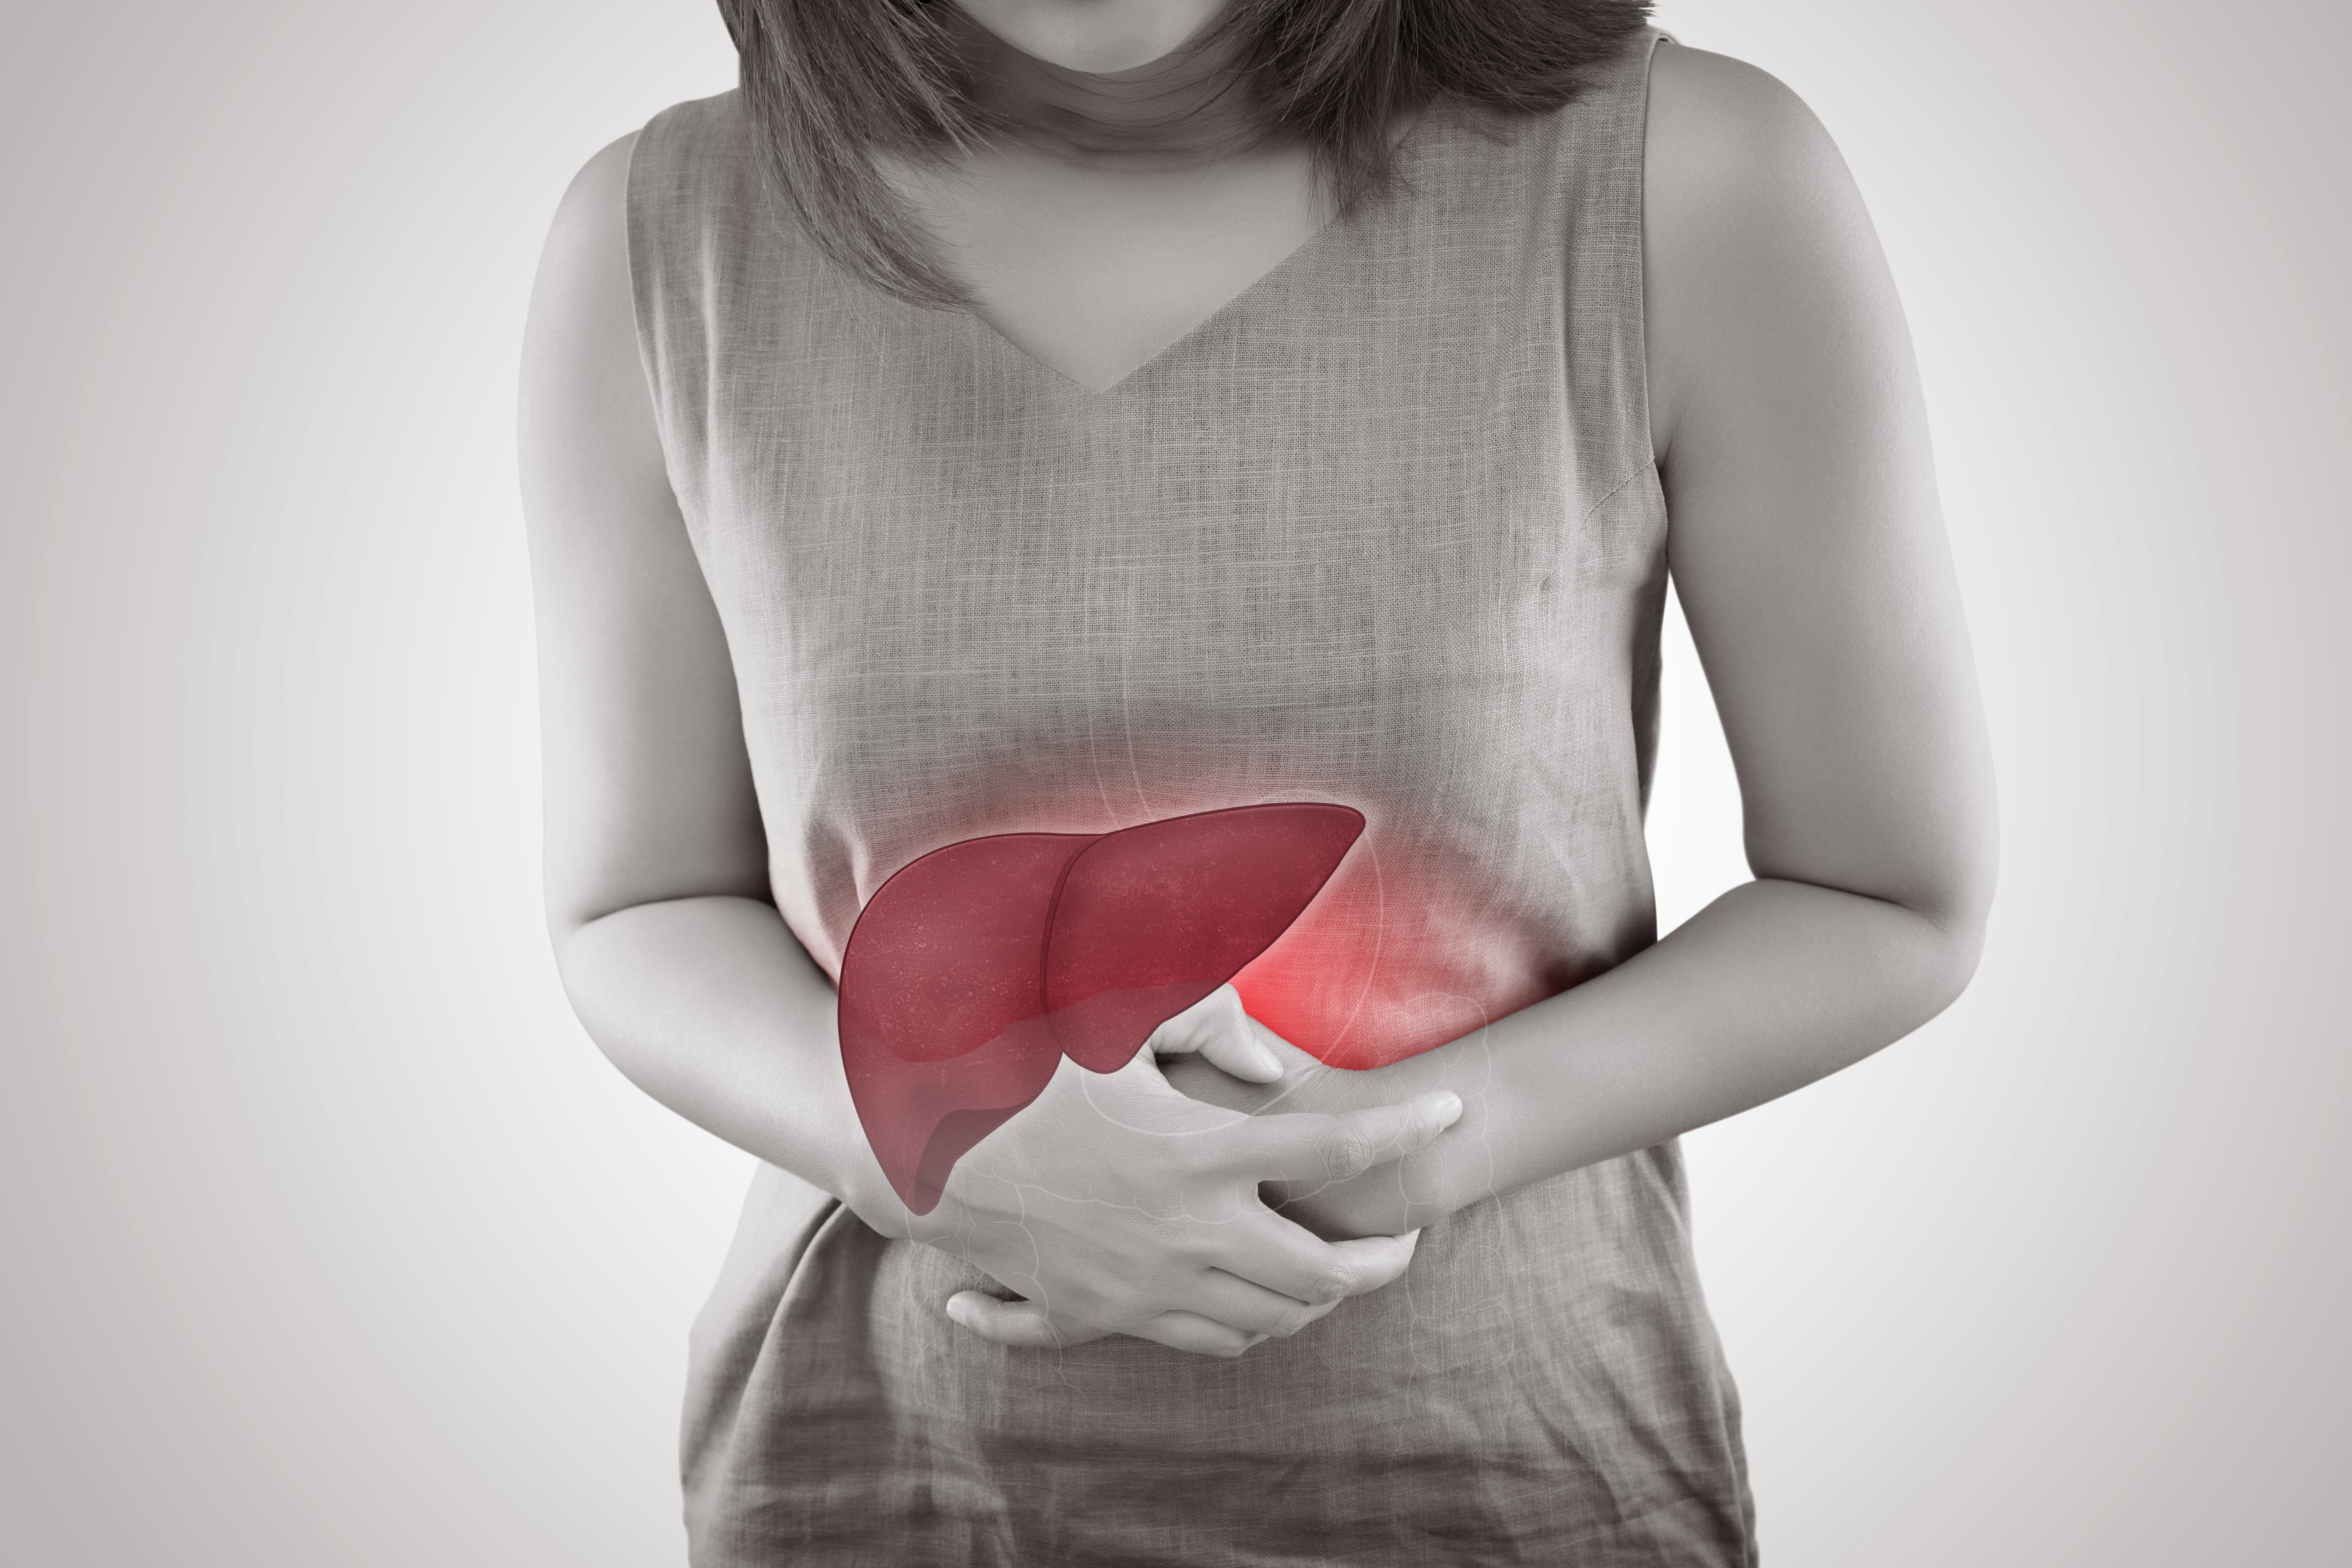 Avoid Sugary Food And Drinks To Combat Fatty Liver Disease New